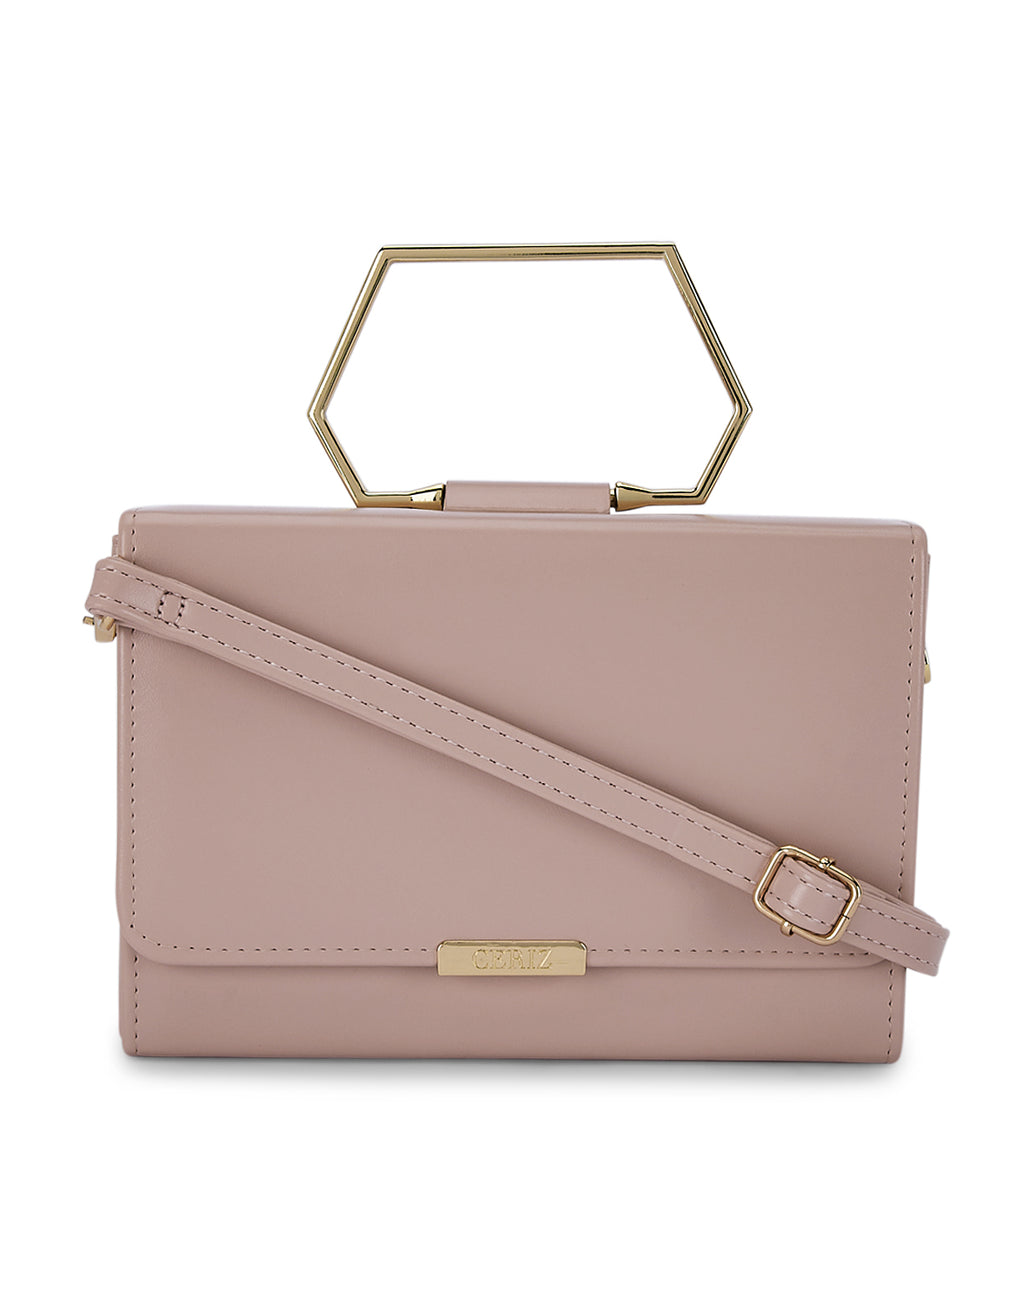 Adelise Pink Clutch Bag